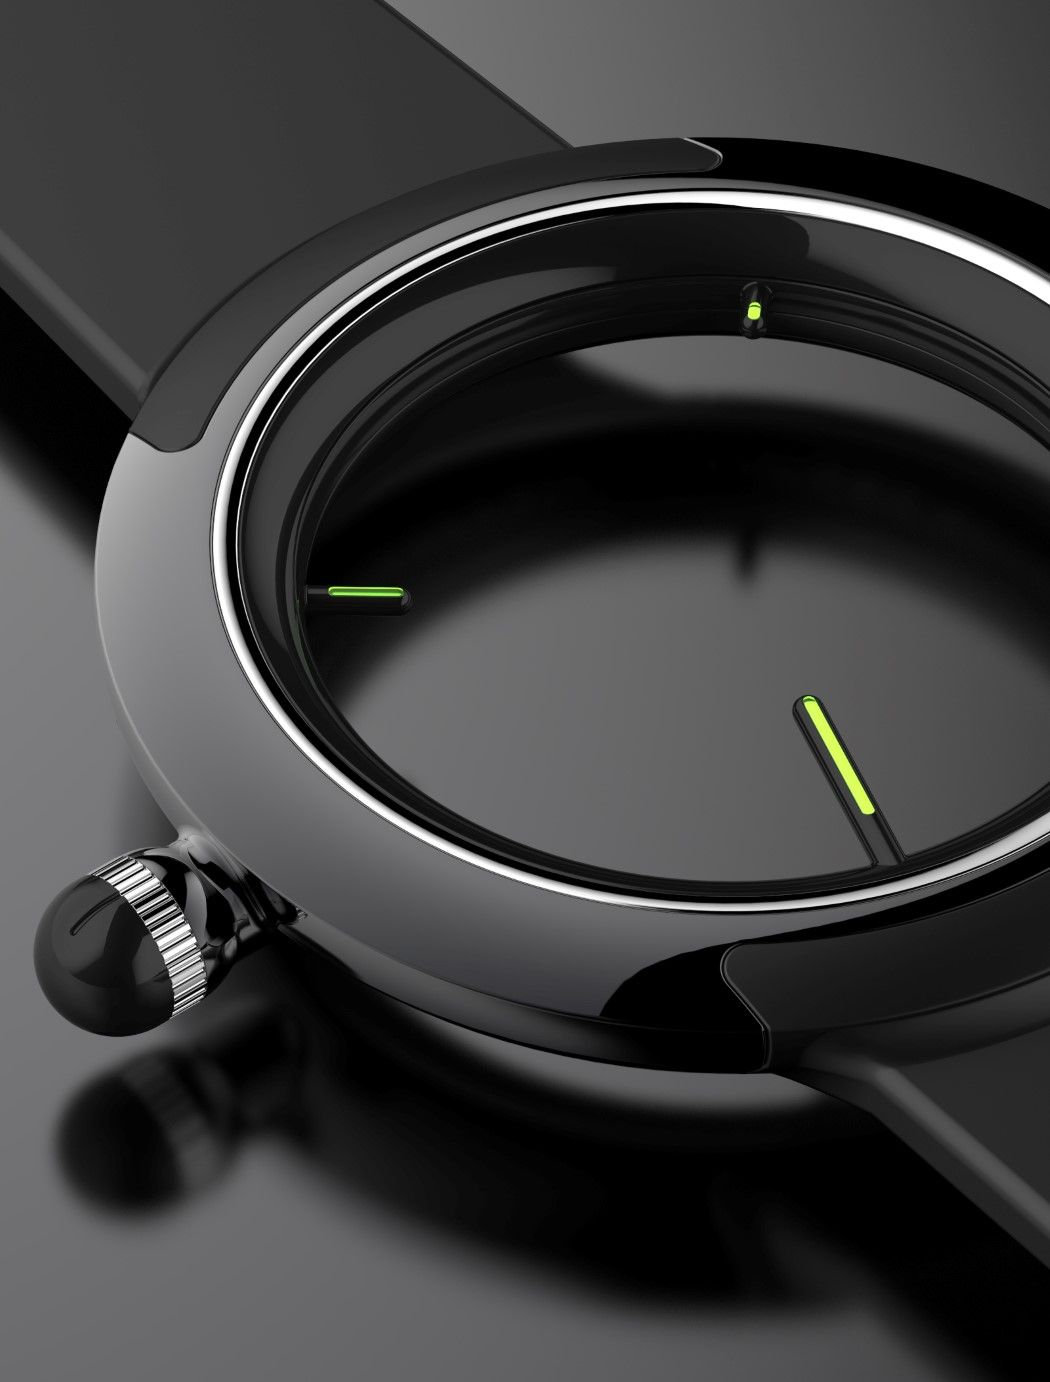 Concentric Wrist Watch Concept ASIG is part of information-technology - This time we want to represent your attention stunning watch concept  The ASIG Concentric watches by Simon Williamson embrace their design in all its hubless glory  Each hand comes in…